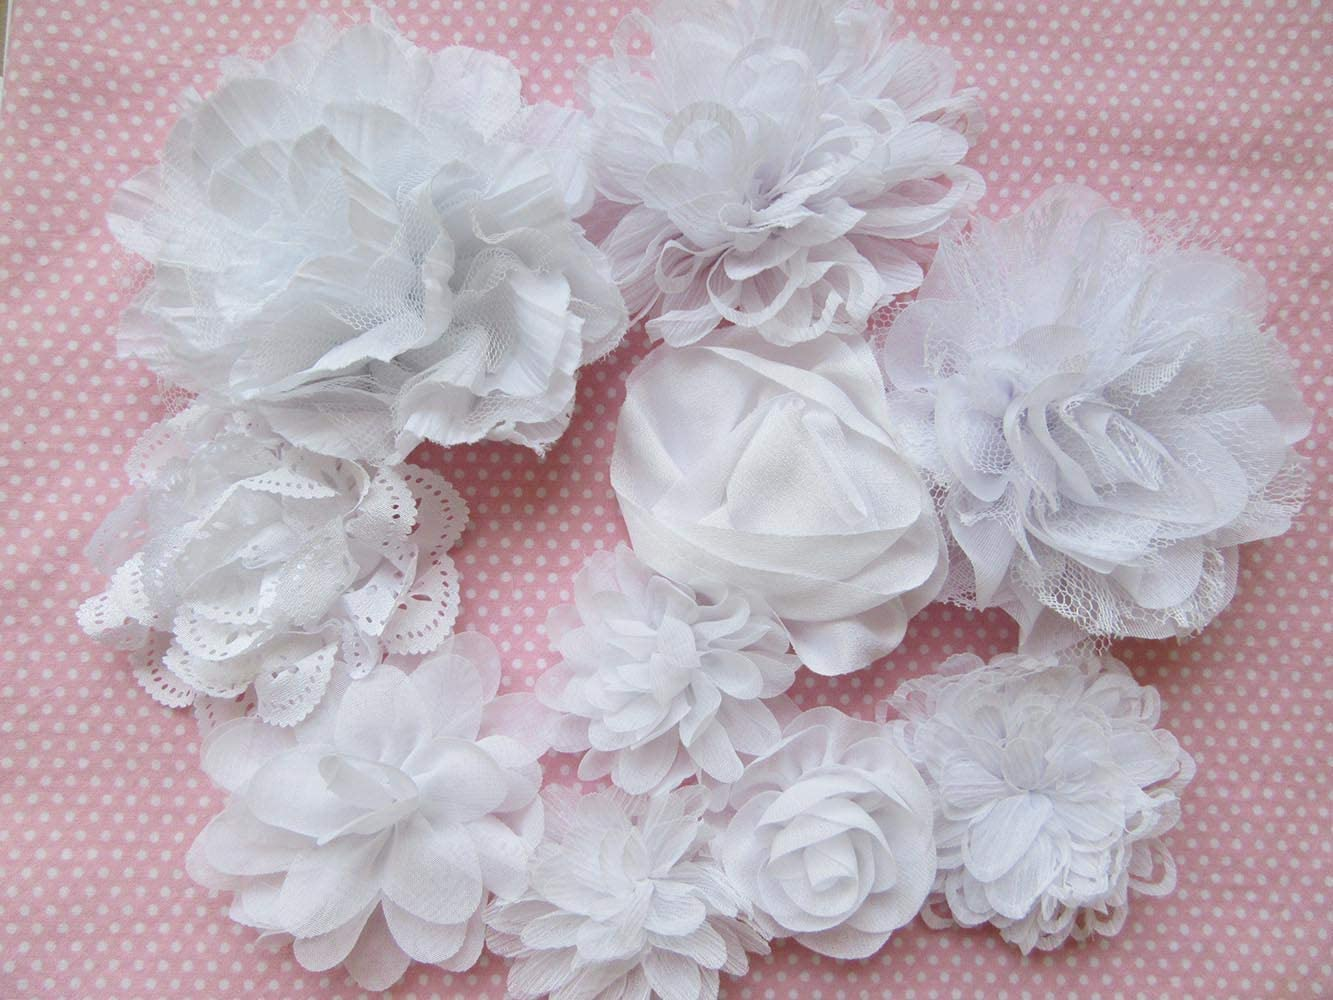 Blue,2 YYCRAFT 20 Pcs Chiffon Flower Rhinestone Pearl for Dress Sewing,DIY Hair Bows Craft and Party Decoration